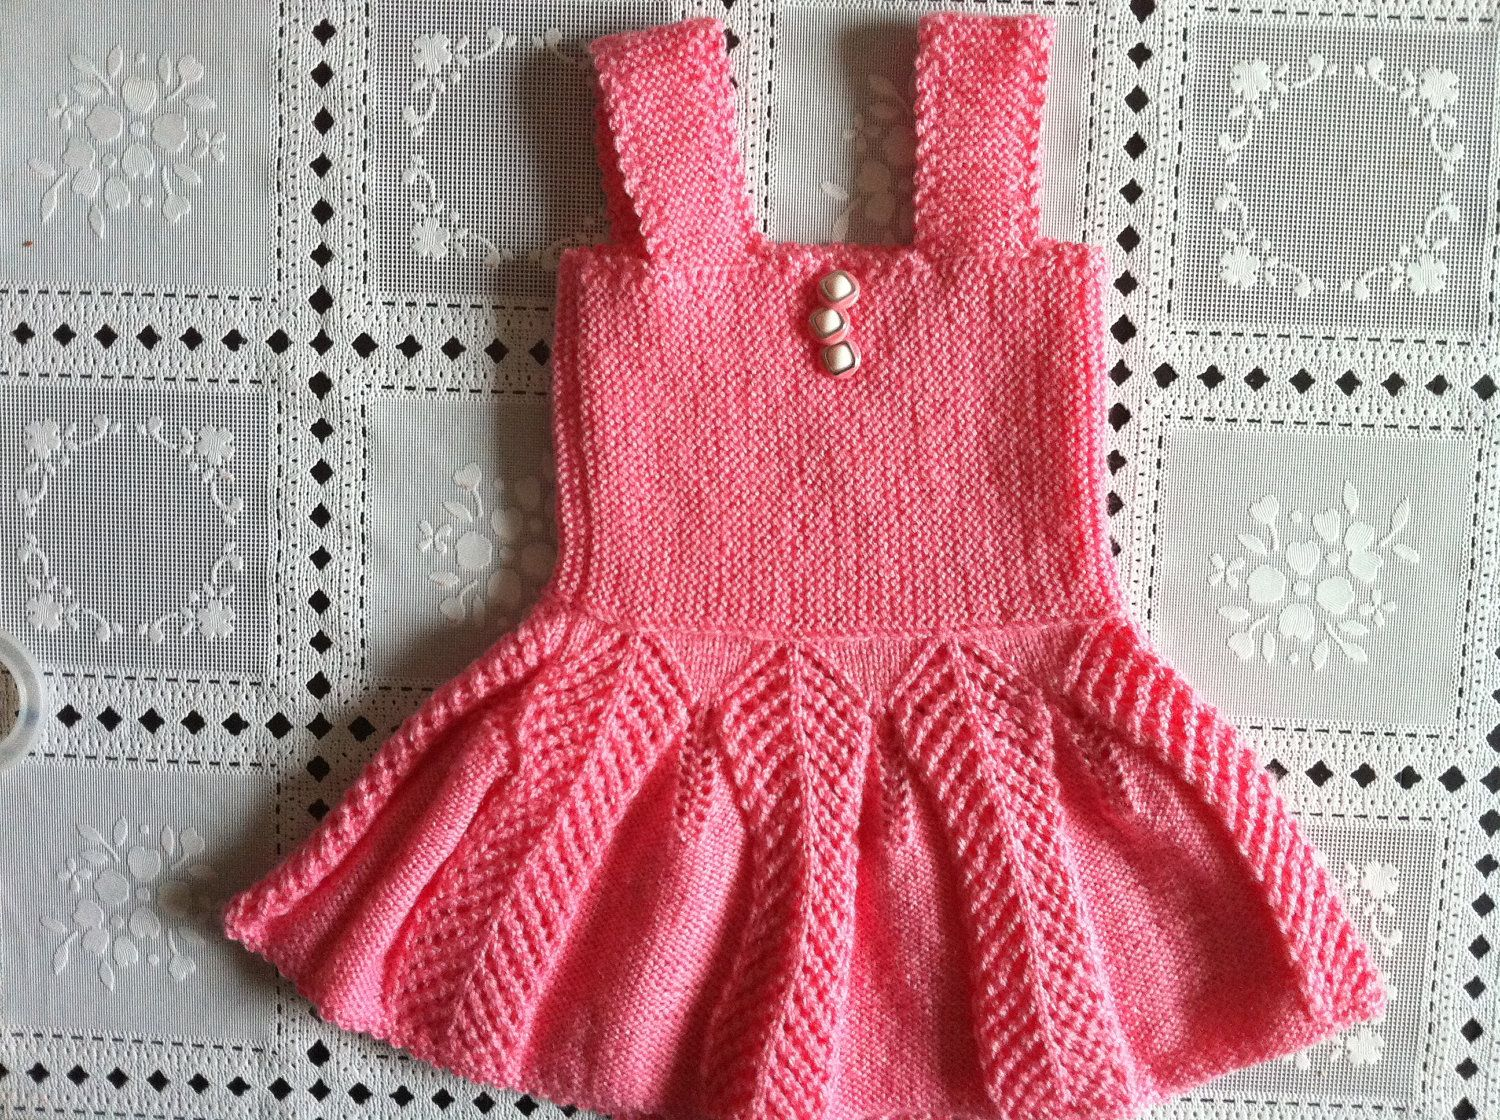 Knitting Baby Clothes : Hand knit baby clothes google search